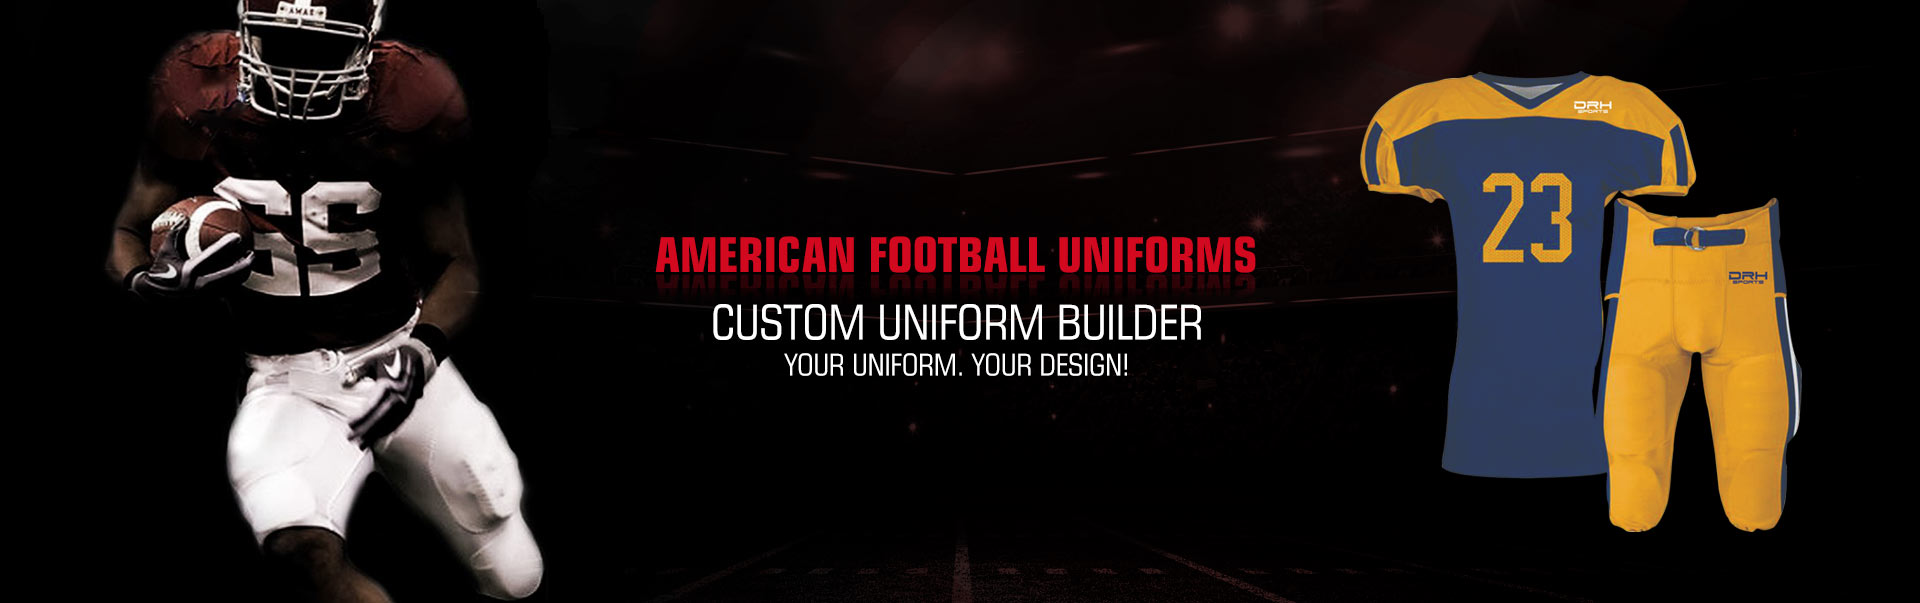 American Football Uniform Wholesaler, Suppliers in Orange